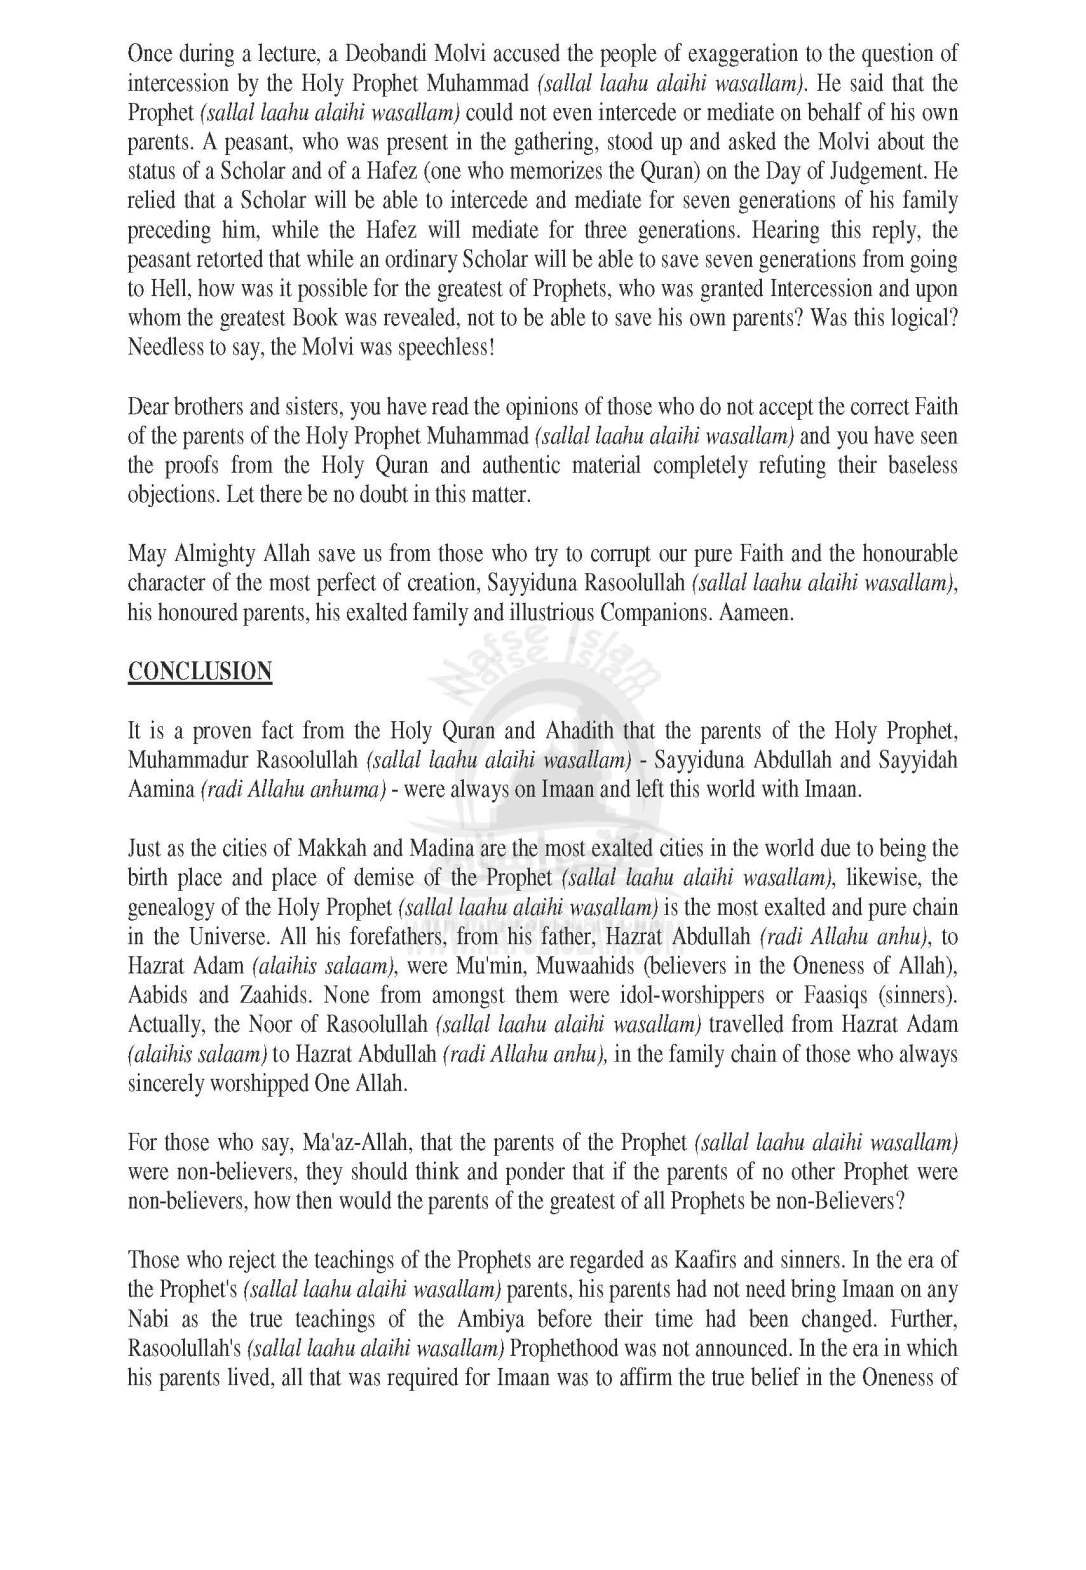 ParentsofHolyProphet_Page_09